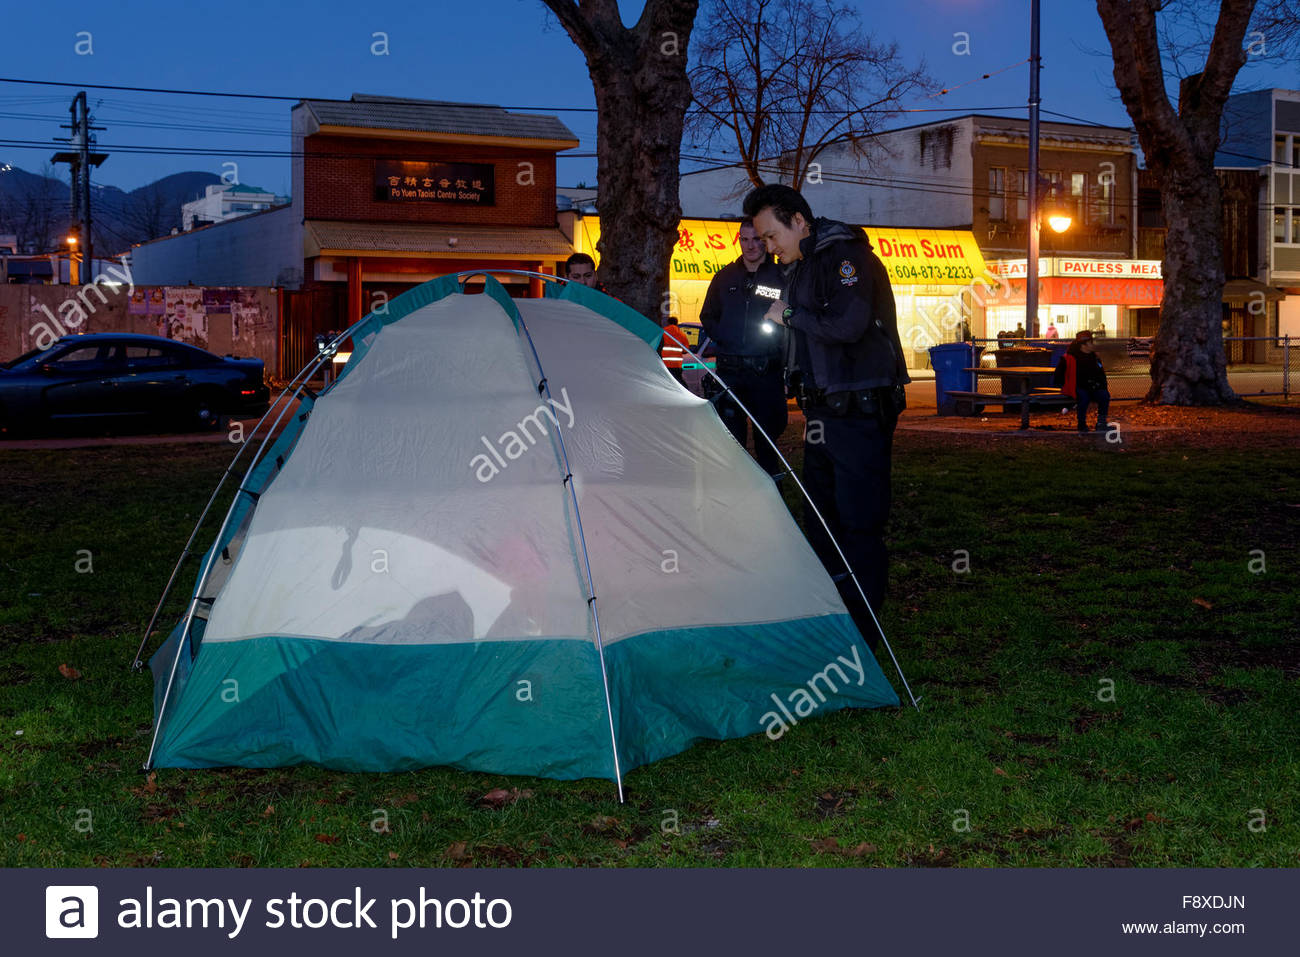 Homeless person in illegal tent gets confronted by police at Oppenheimer Park, Vancouver, British Columbia, Canada, - Stock Image